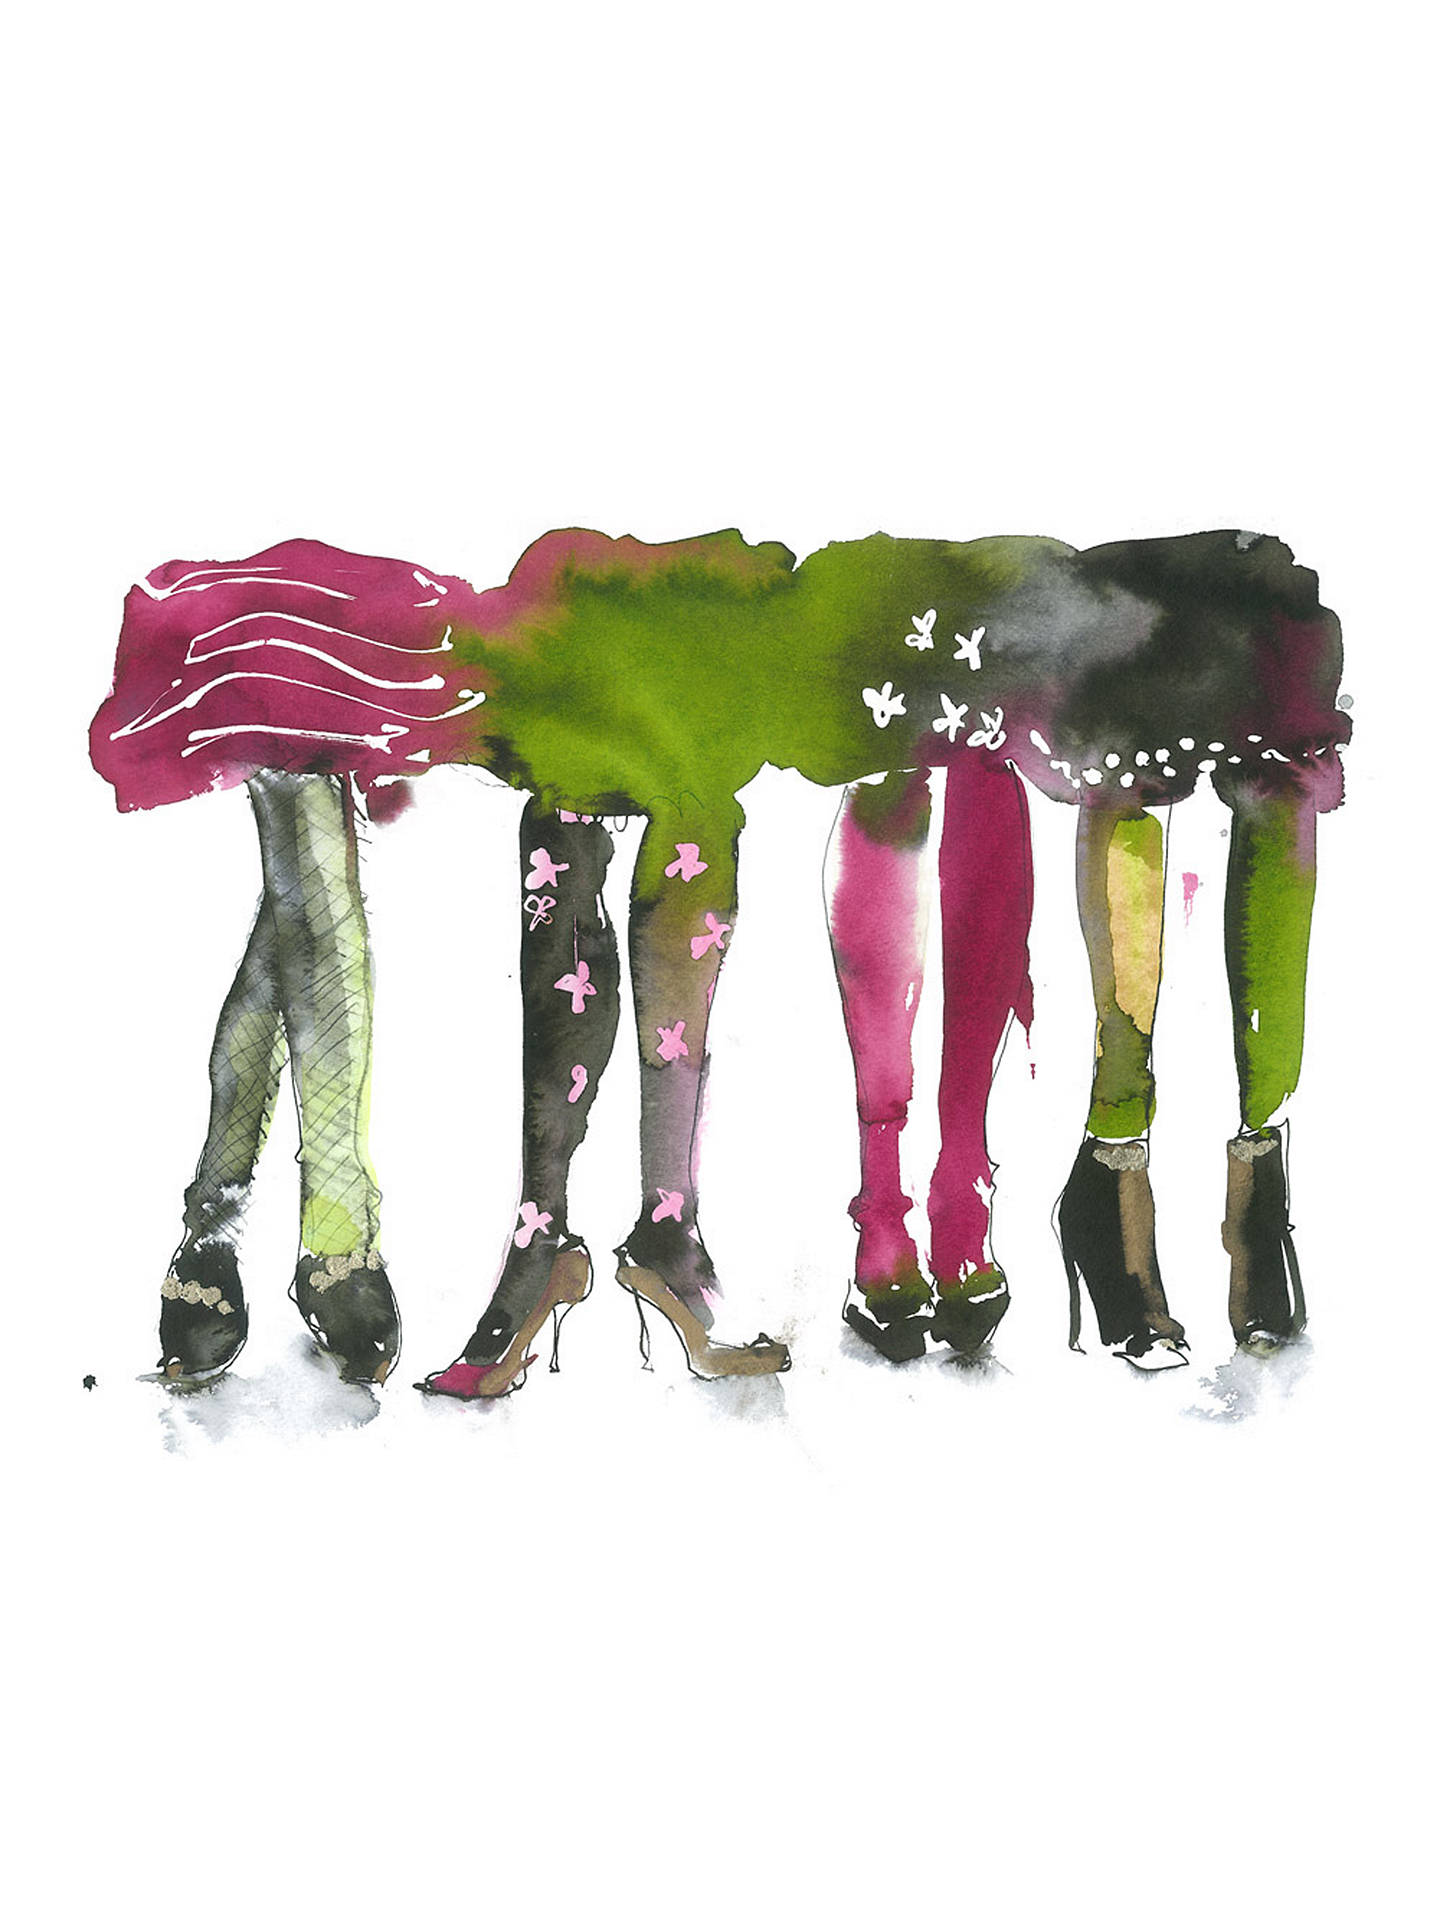 BuyBridget Davies - Glamorous Legs, Stretched Canvas, 40 x 50cm Online at johnlewis.com